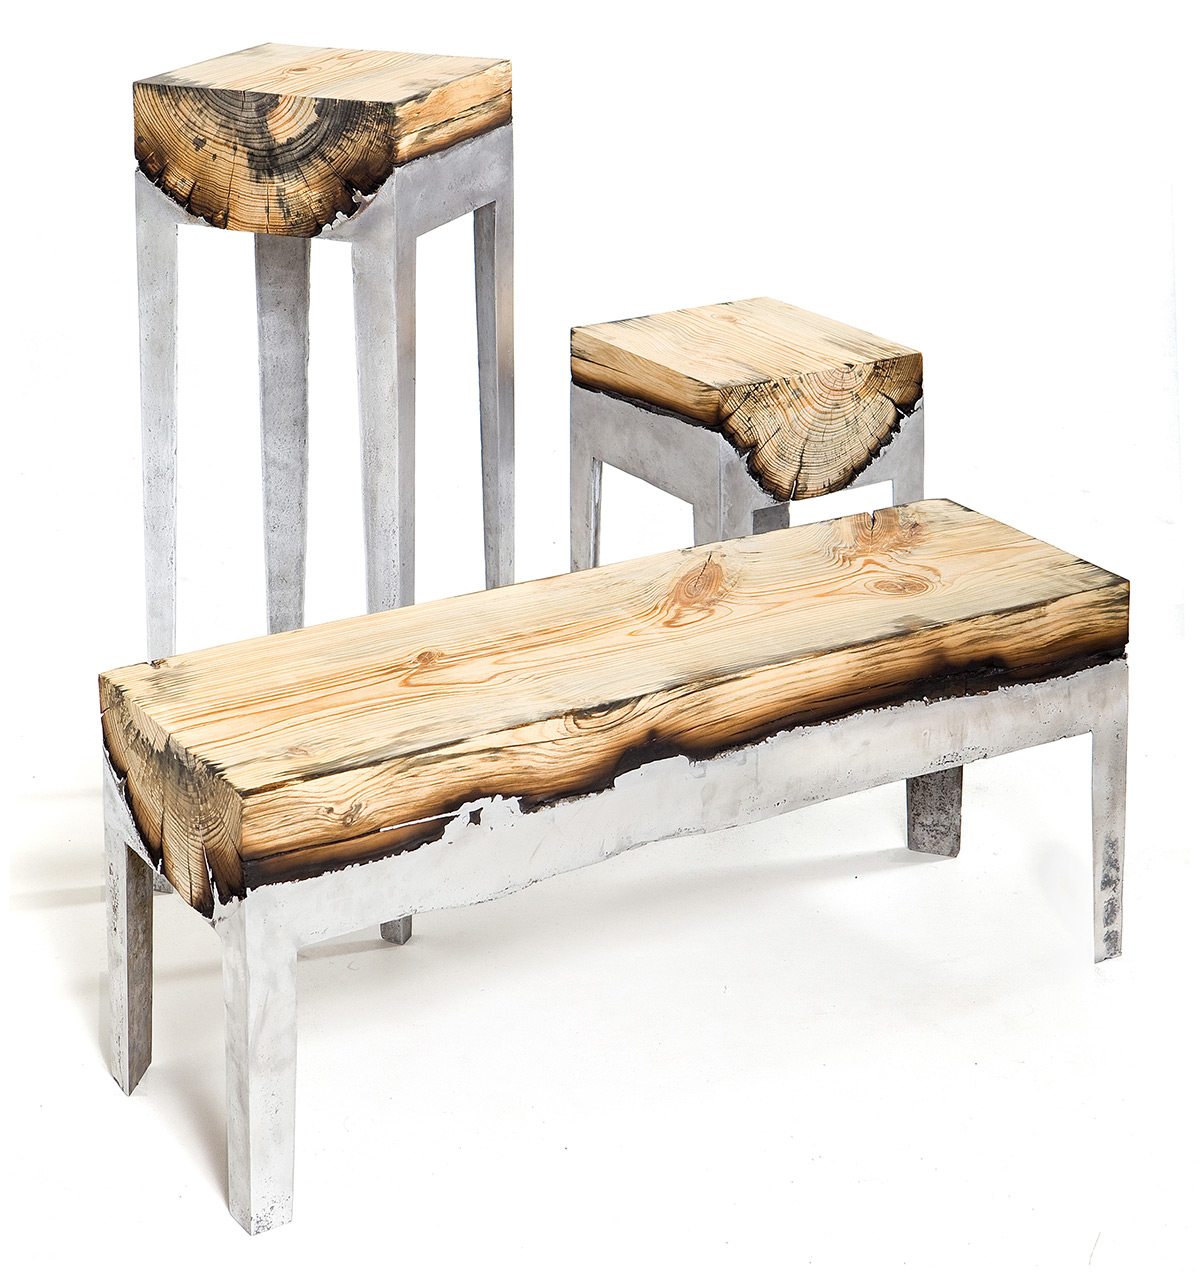 Wood Furniture Design Designer Hilla Shamia Fuses Cast Aluminum And Tree Trunks